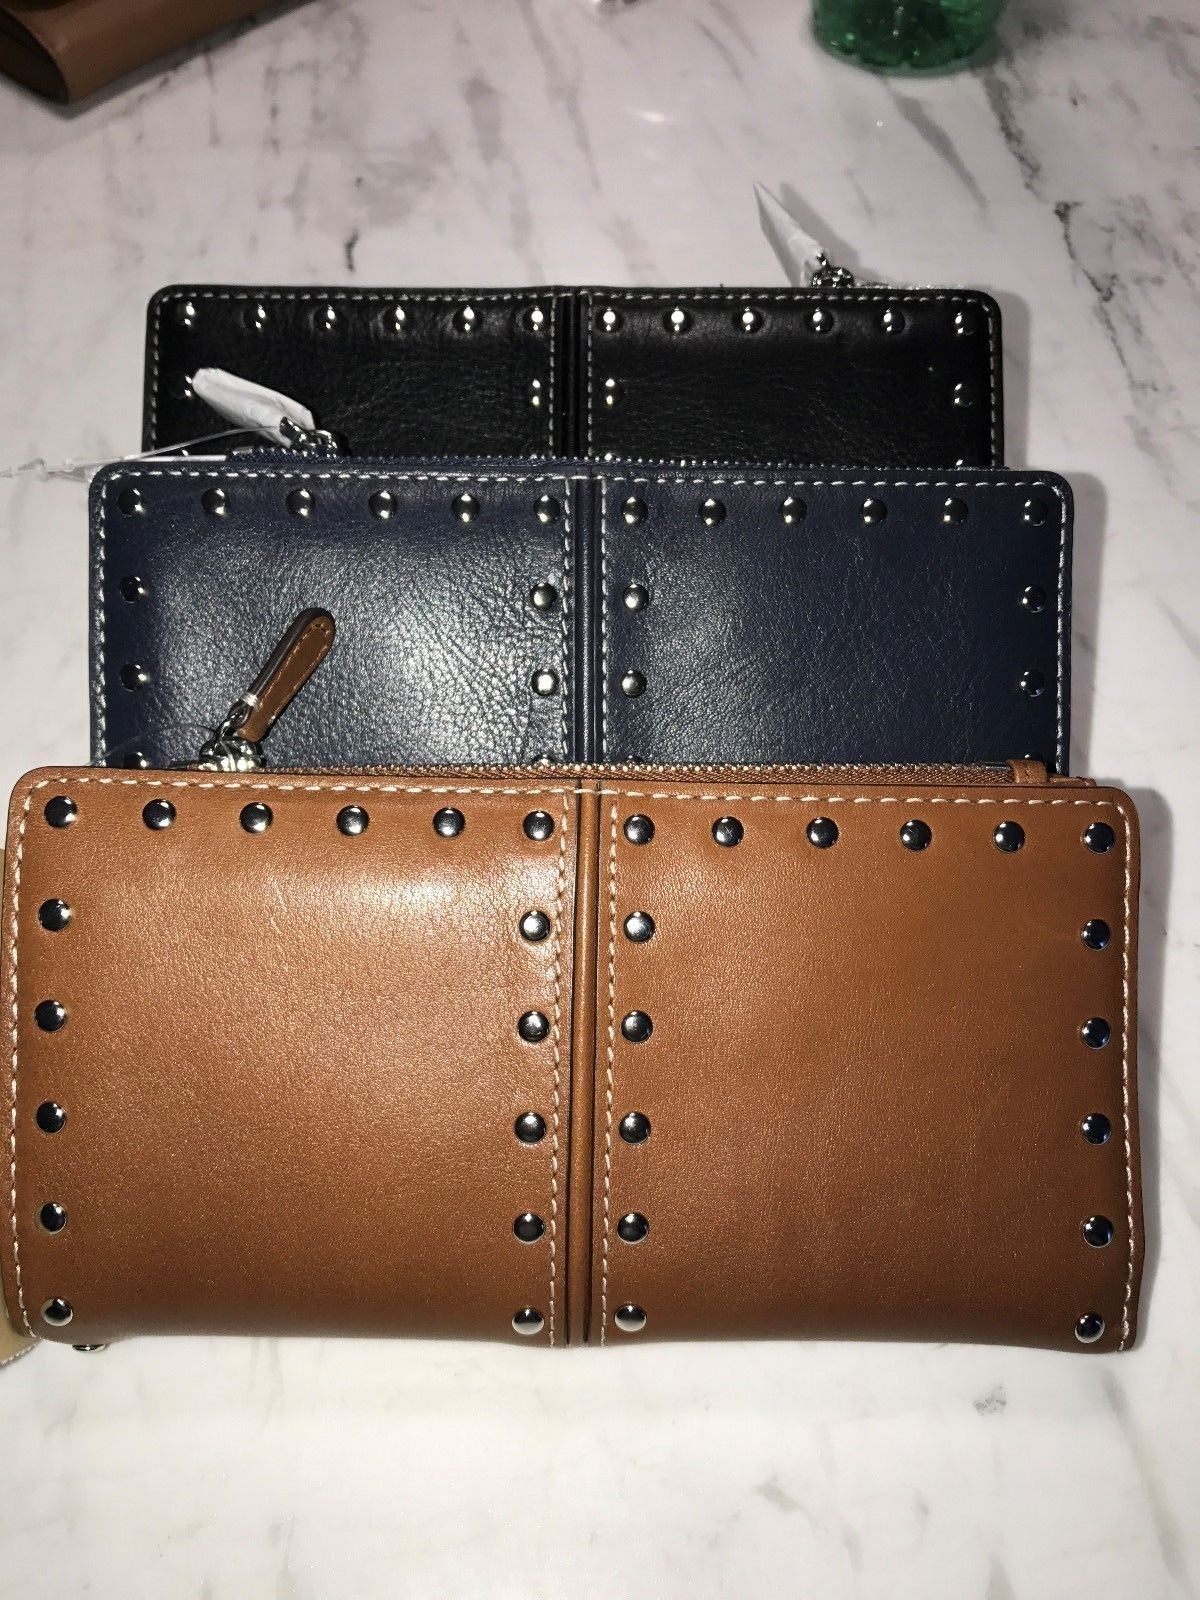 713441afe62 Michael Kors Astor Top Zip Studded Continental Clutch Wallet   Coin Purse  NWT